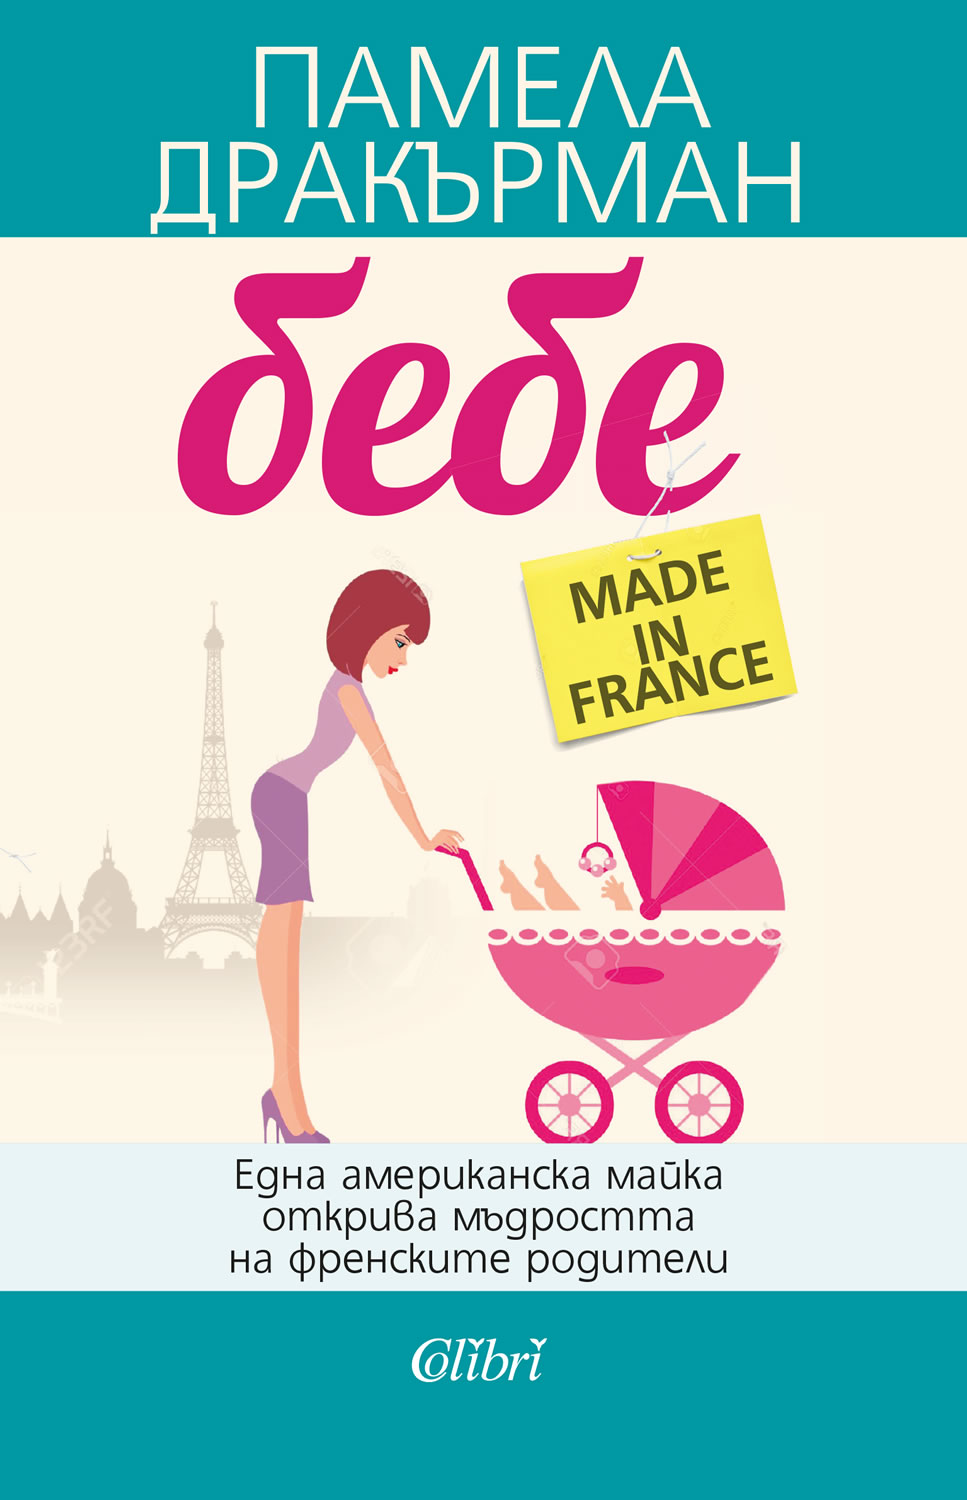 Бебе made in France